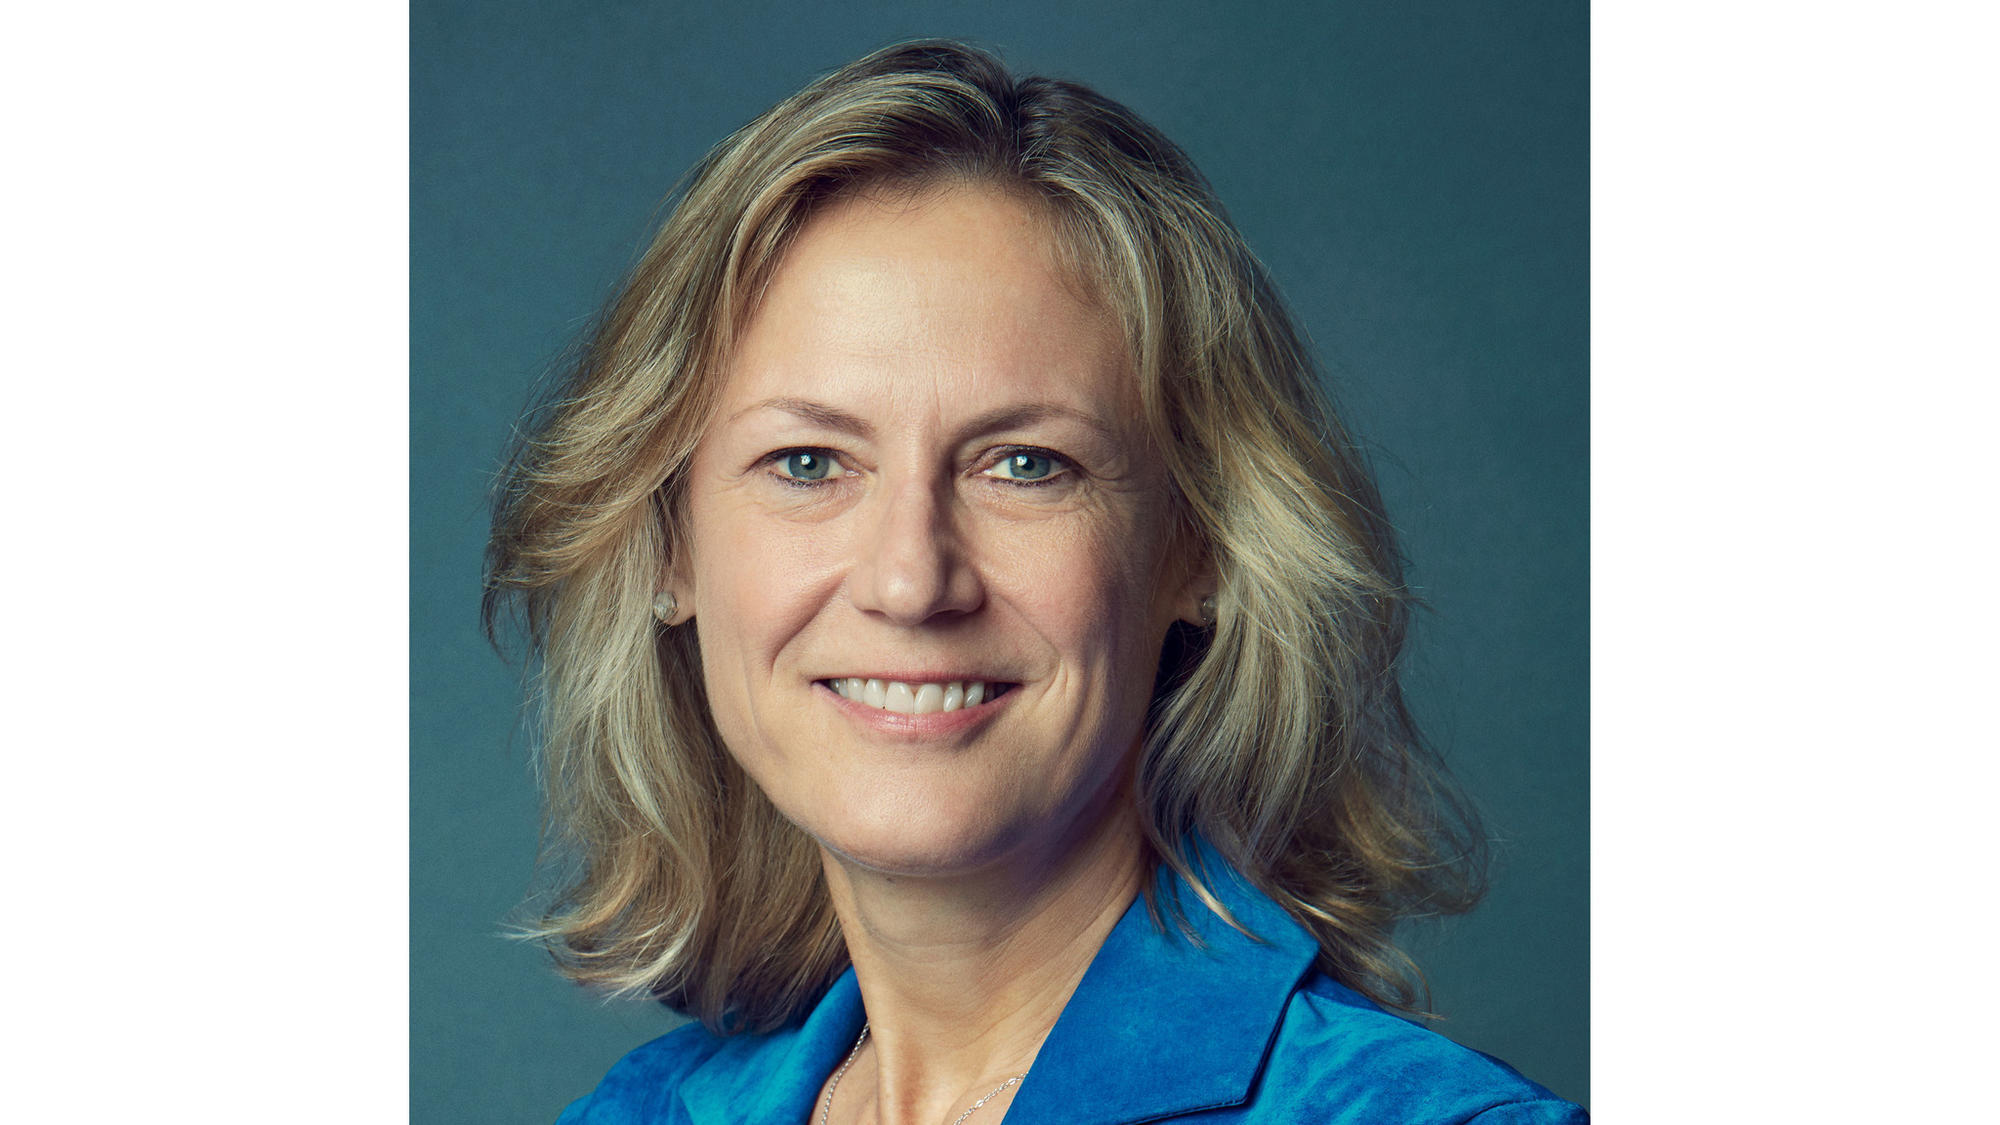 Warner Bros. is getting its first female CEO, BBC's Ann Sarnoff